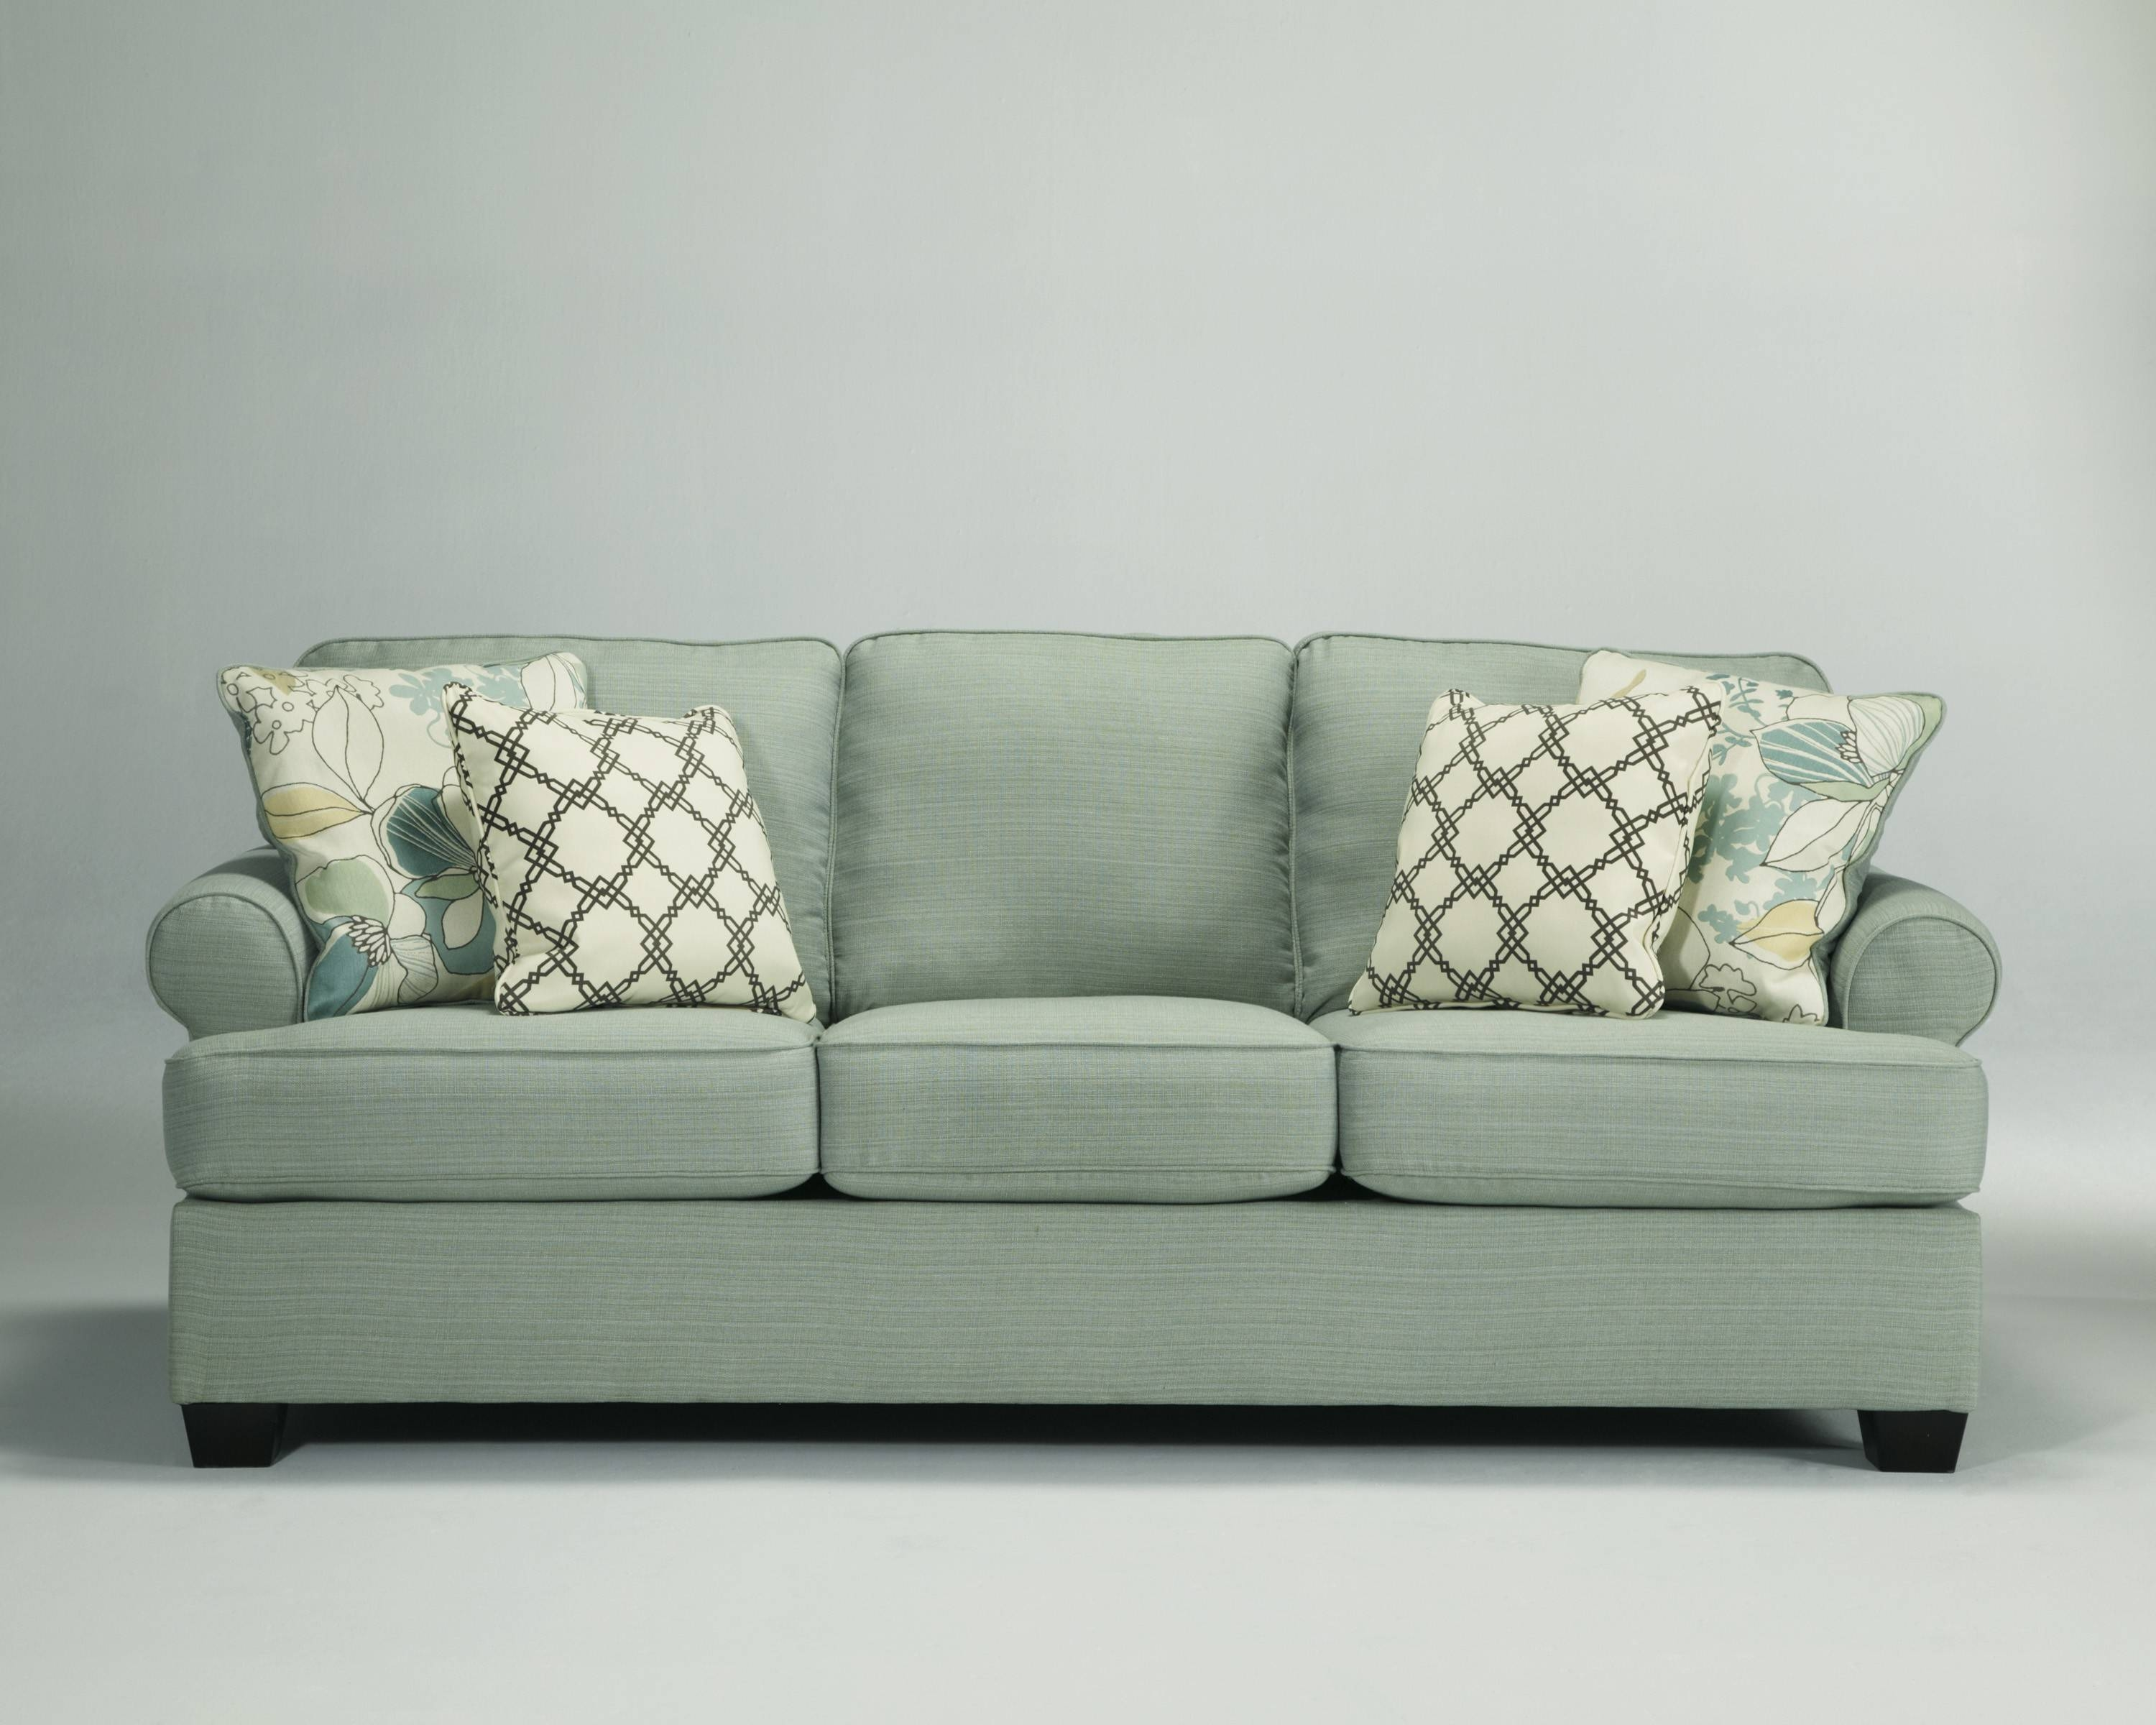 25 Best Ideas About Green Couch Decor On Pinterest | Sofa with Seafoam Green Sofas (Image 2 of 15)